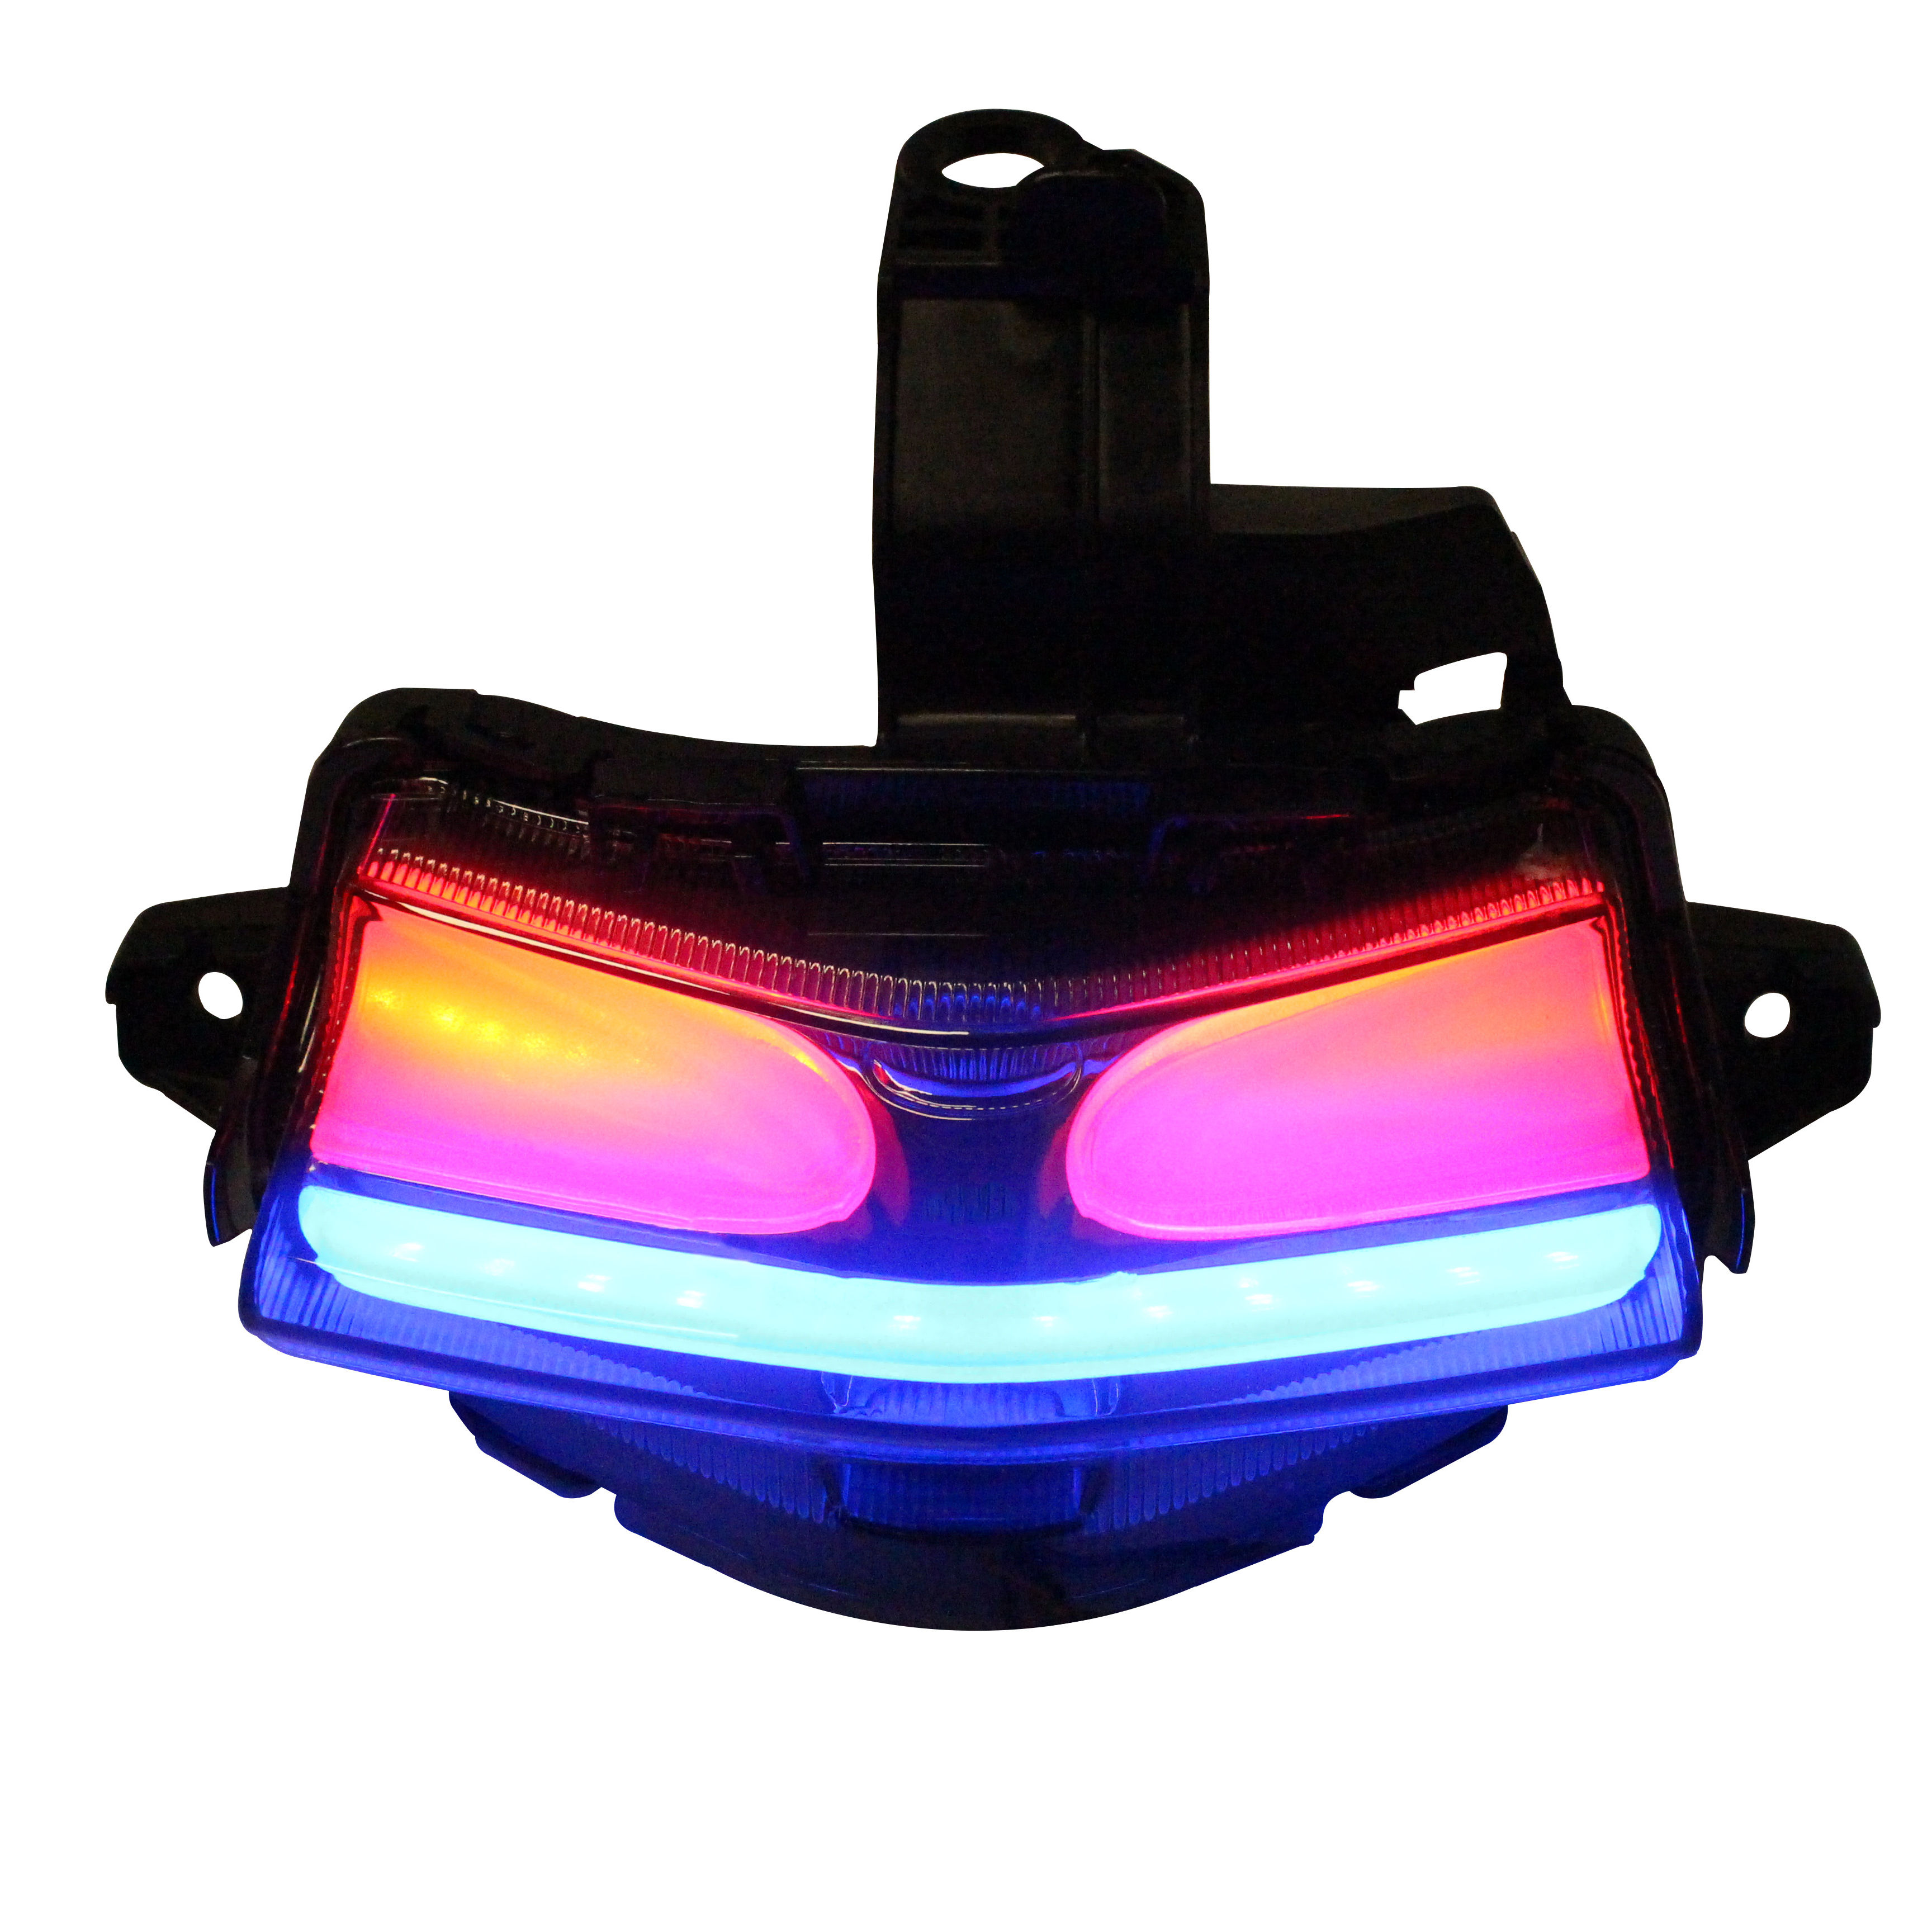 red lens taillight motorcycle led rear lamp plastic material stop lamp for aeroxL155